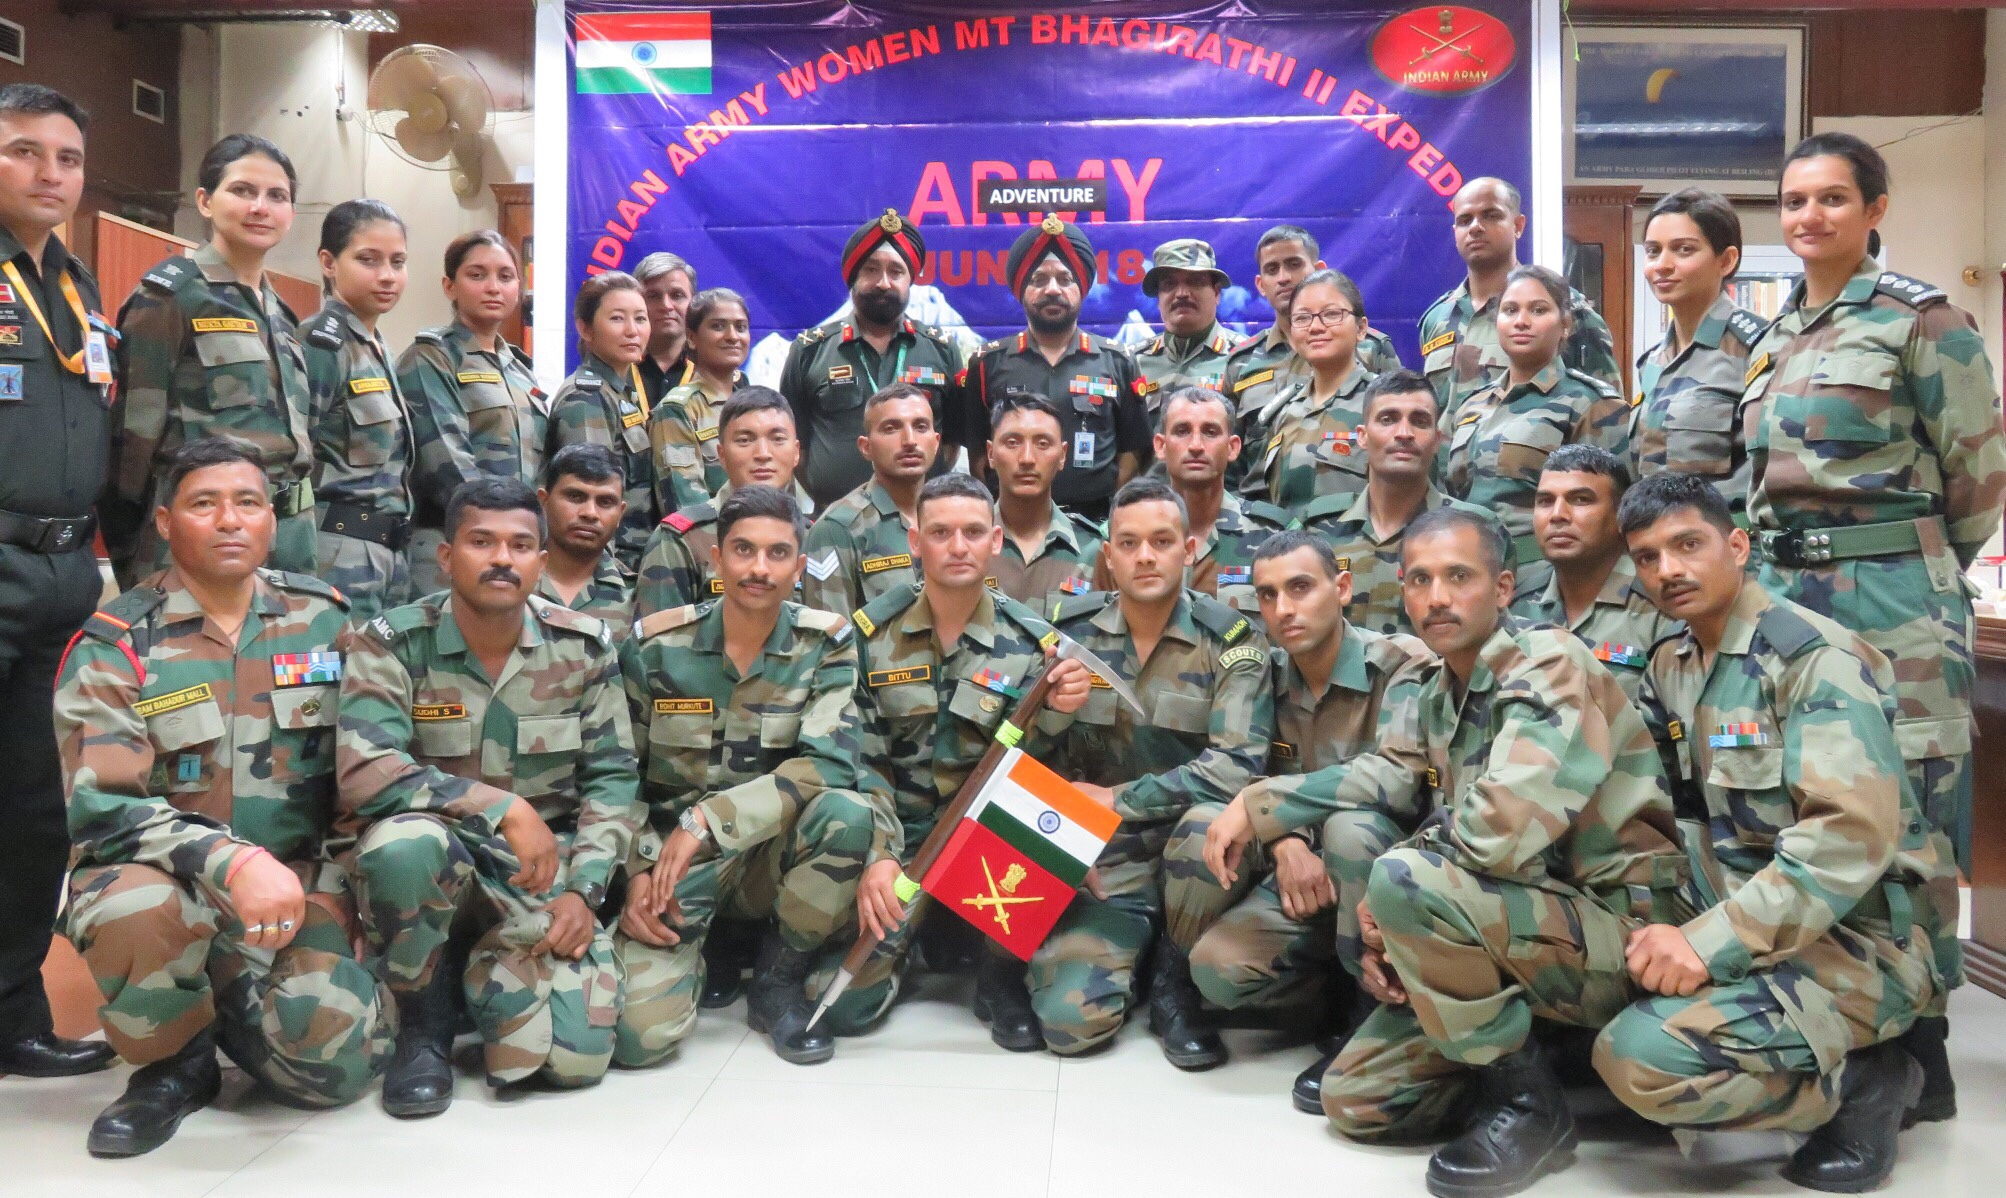 Indian Army Women Officers off to Mt Bhagirathi II